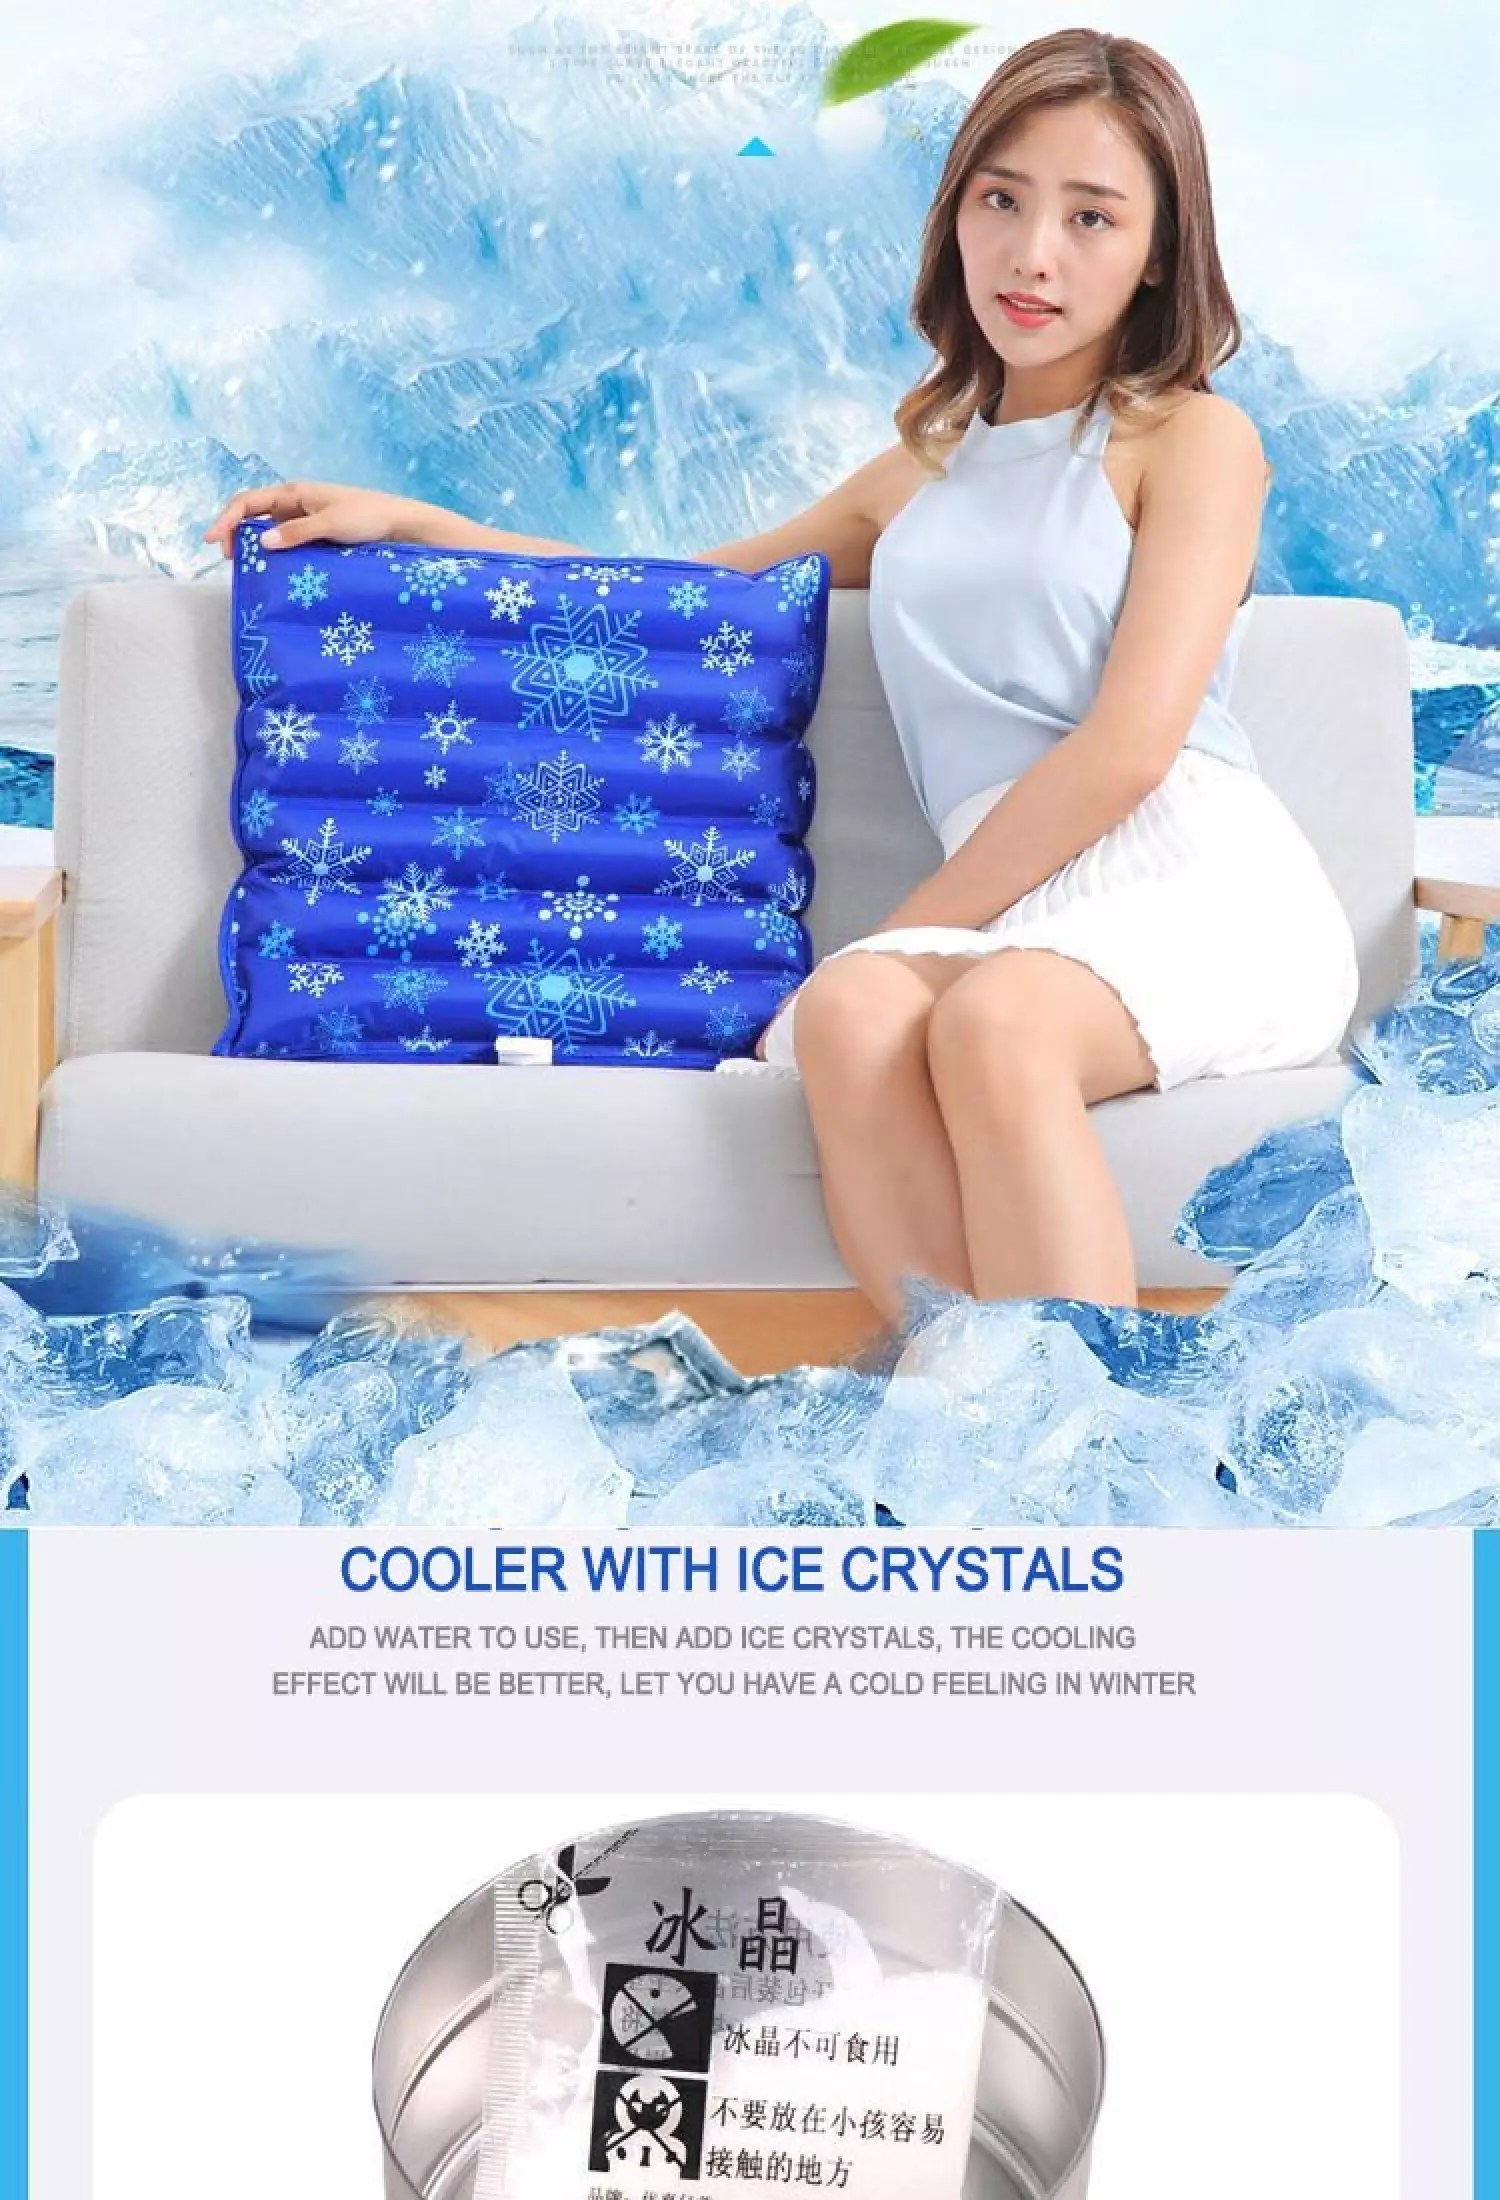 36 25cm 36 36cm ice pad water pillow ice cushion car gel water cushion free of water summer cooling breathable cool pillow student water bag